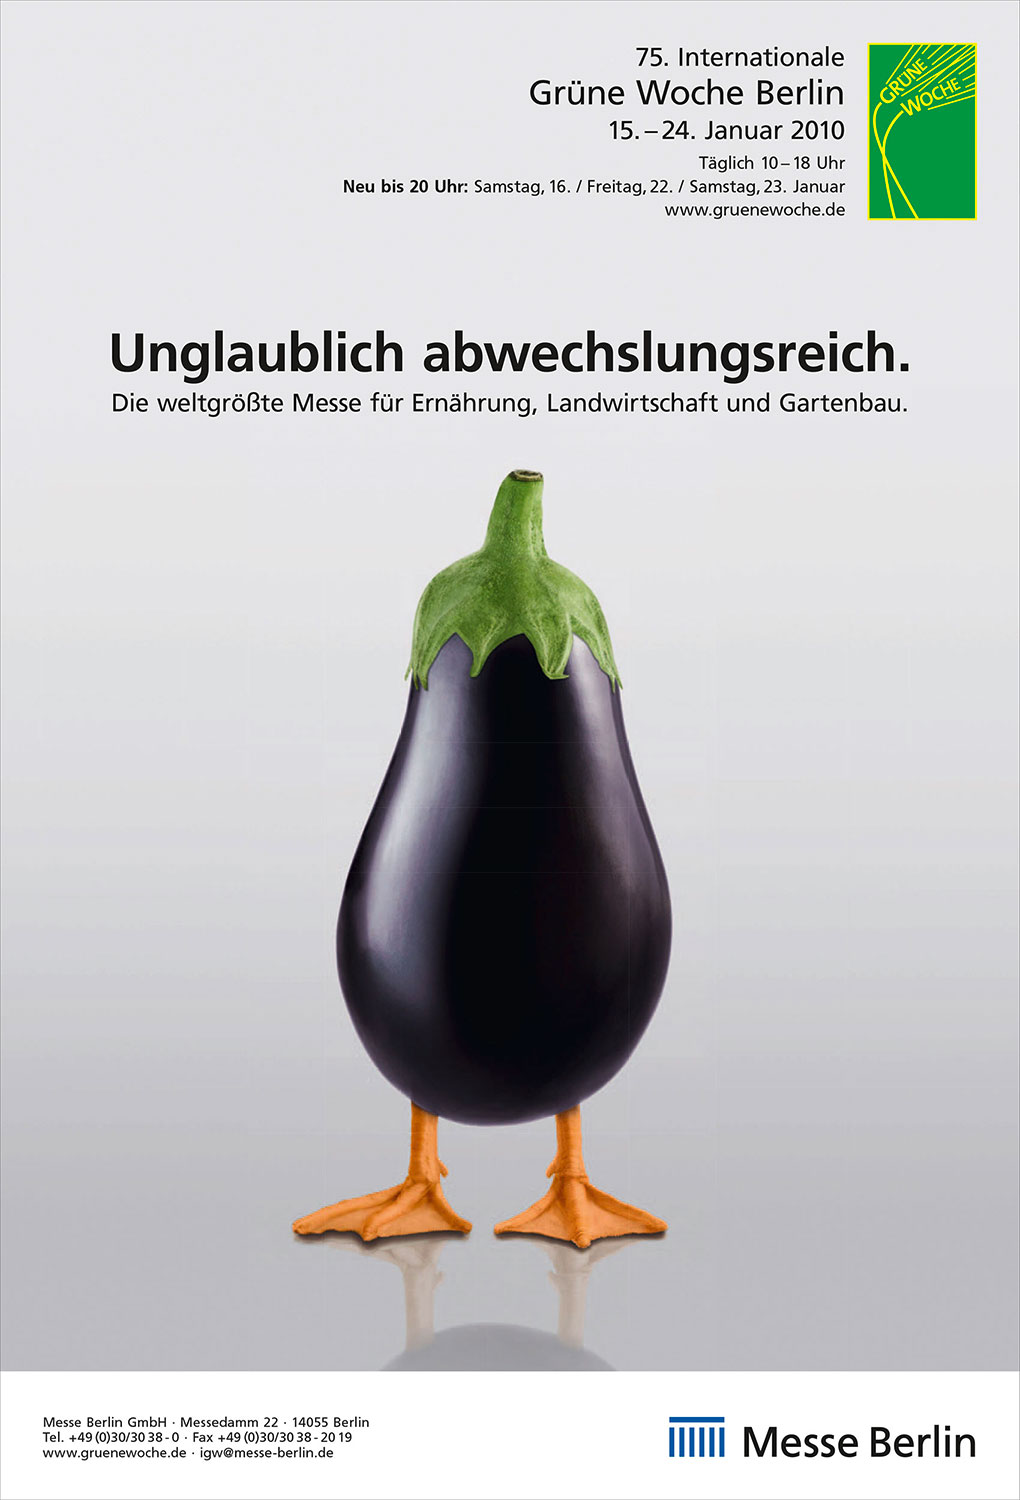 Advertising Photographie Still Life Composing Internationale Grüne Woche Messe Aubergine Entenfuss unglaublich abwechslungsreich Idris Kolodziej